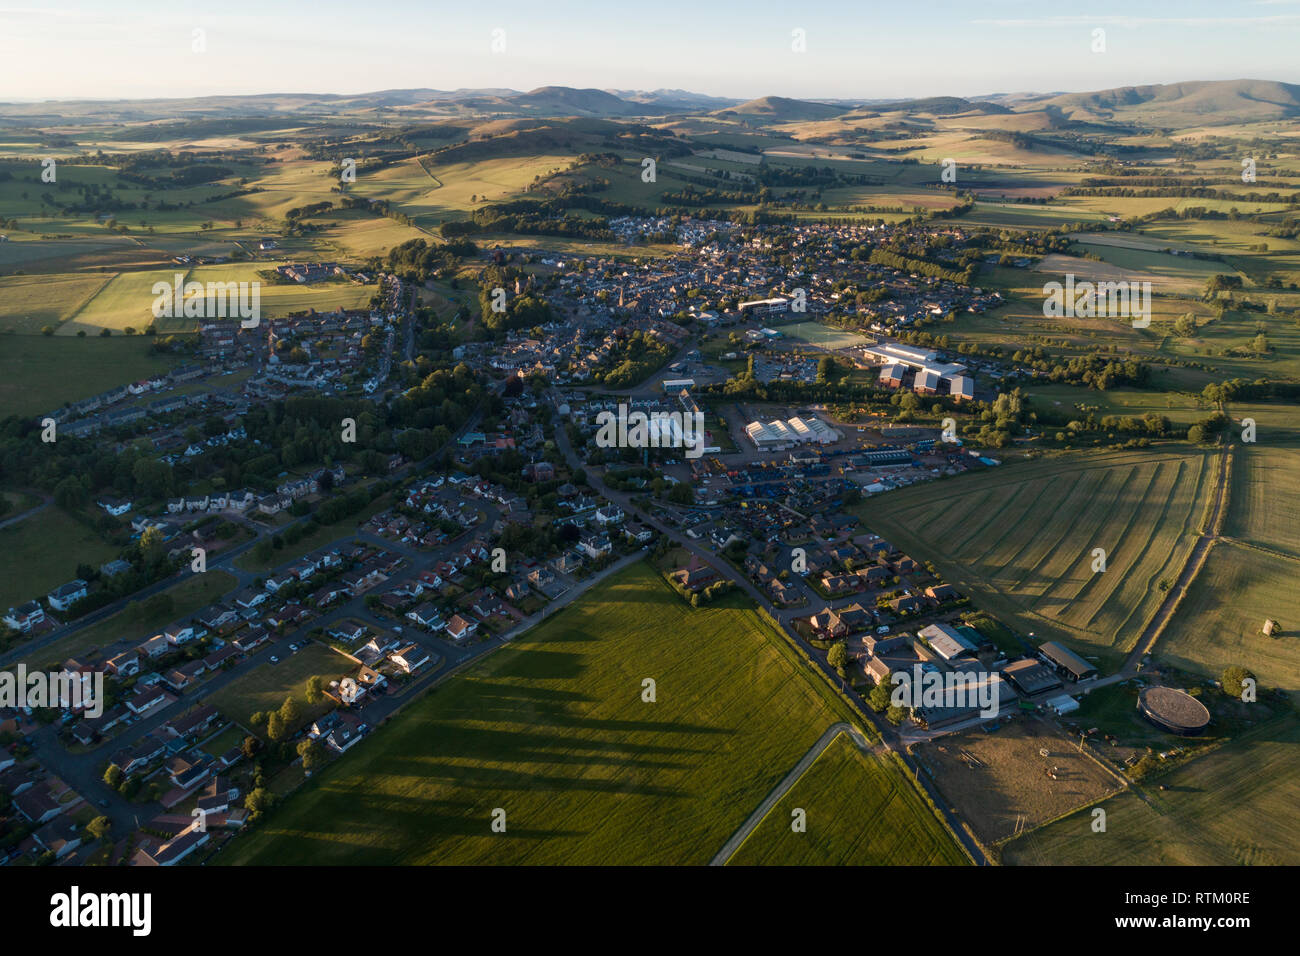 Aerial image of the town of Biggar in South Lanarkshire showing the Upper Clyde Valley and hills of the Scottish Borders Region, taken in evening sun. - Stock Image